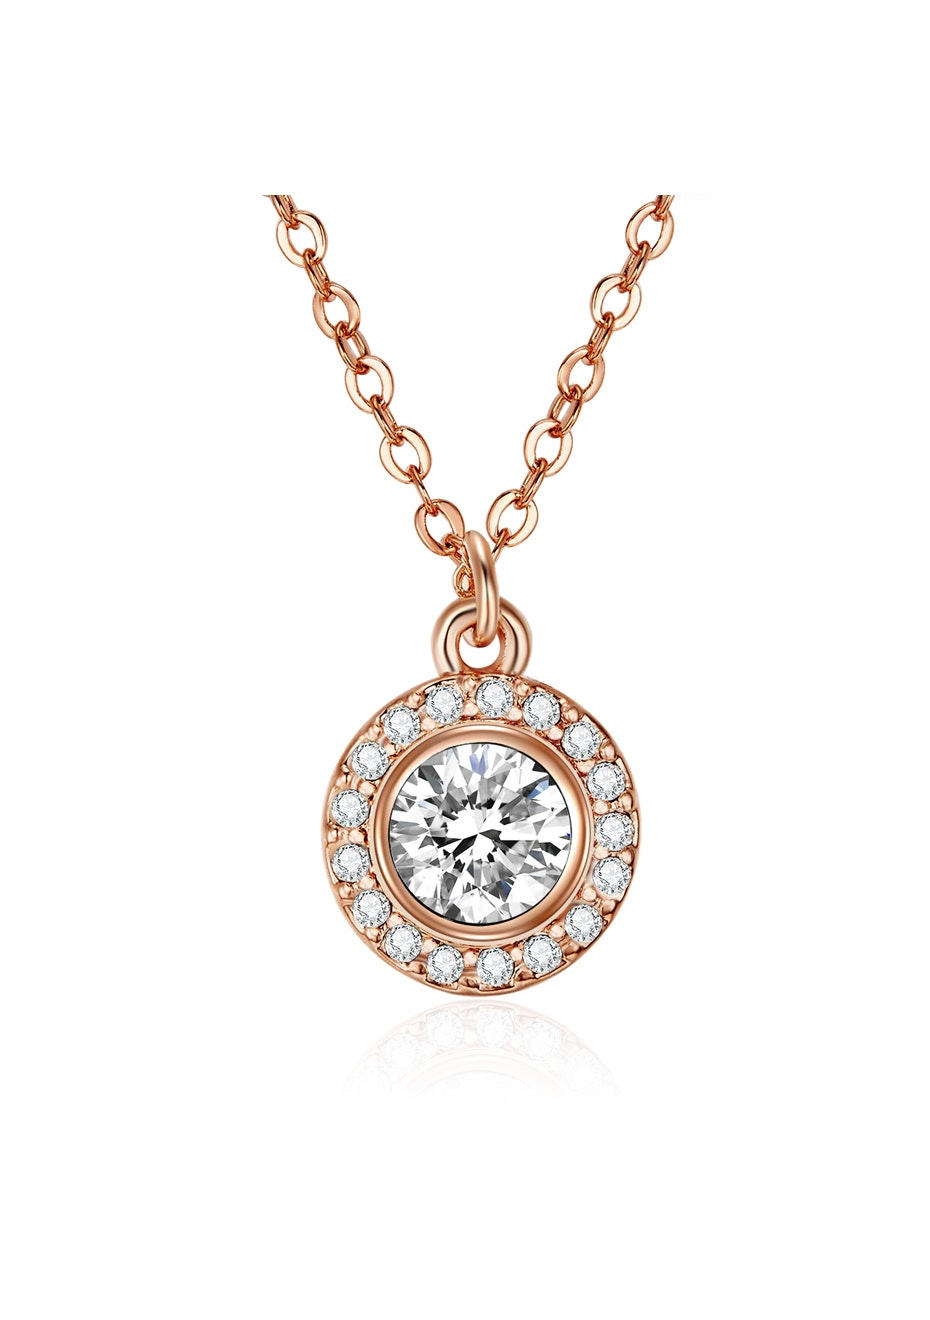 Pendant Necklace Embellished with Crystals from Swarovski -Rose Gold